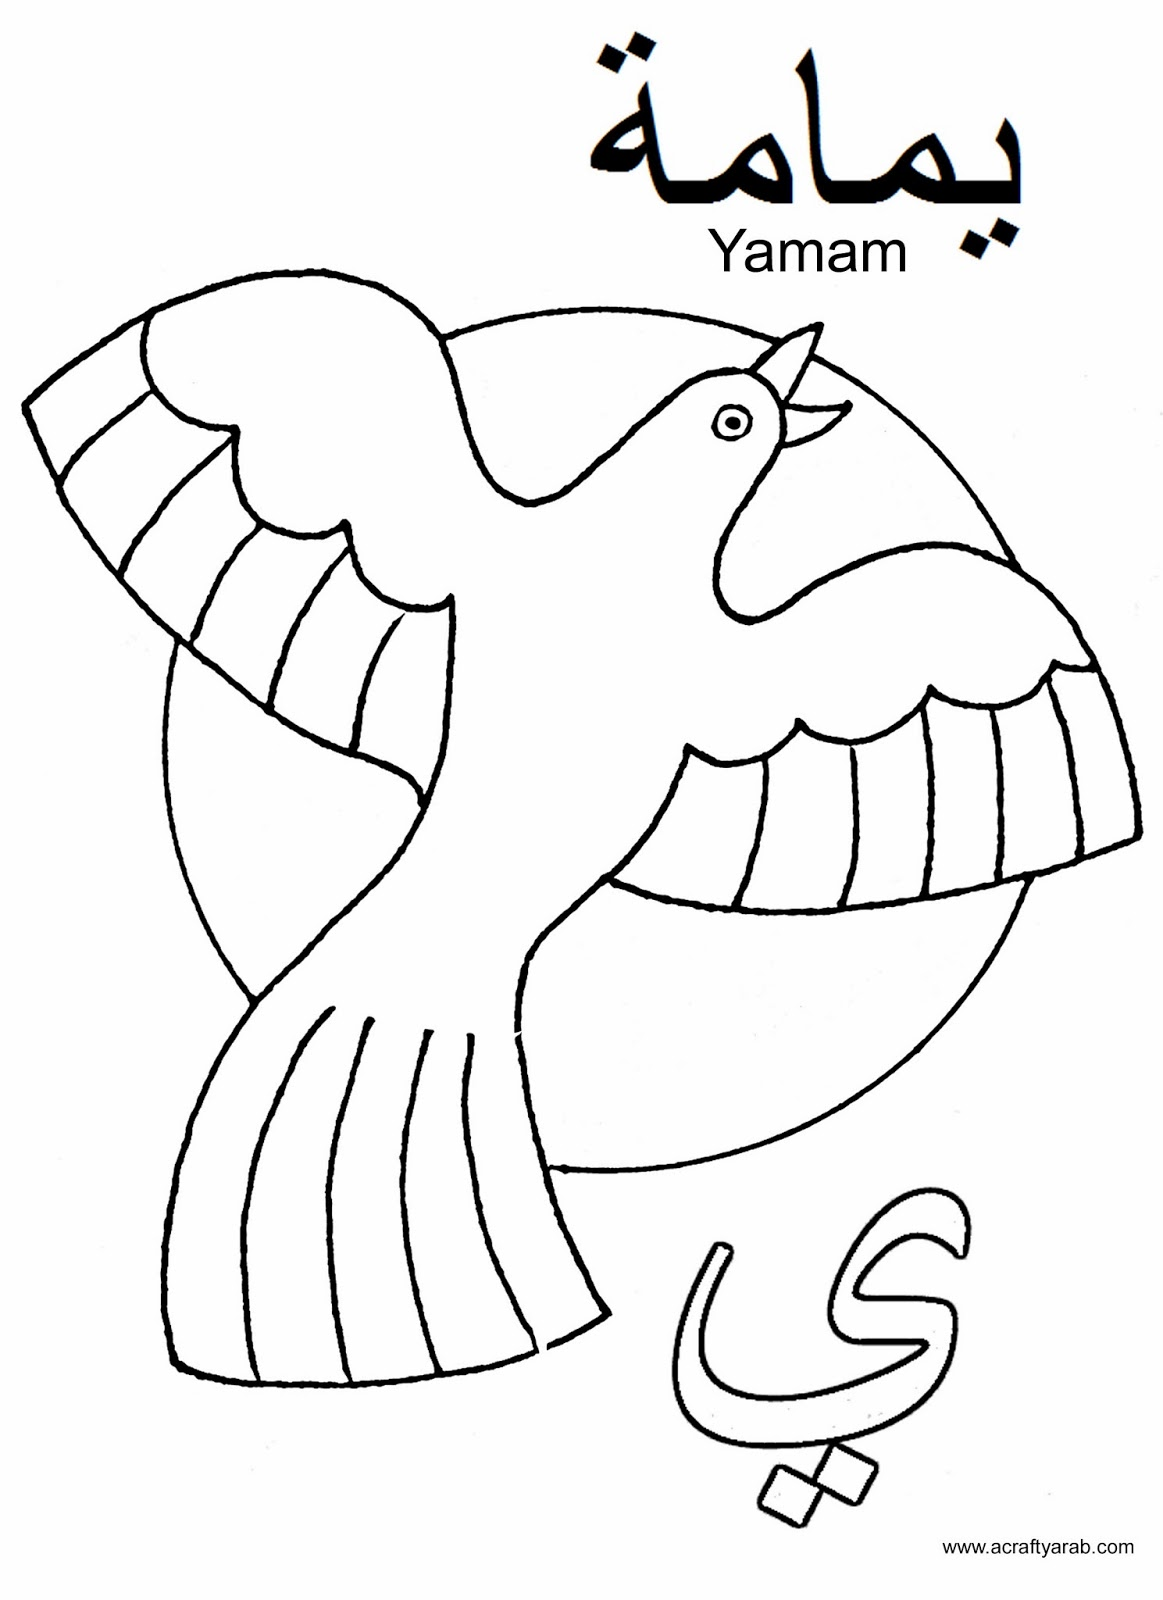 A Crafty Arab Arabic Alphabet coloring pagesYa is for